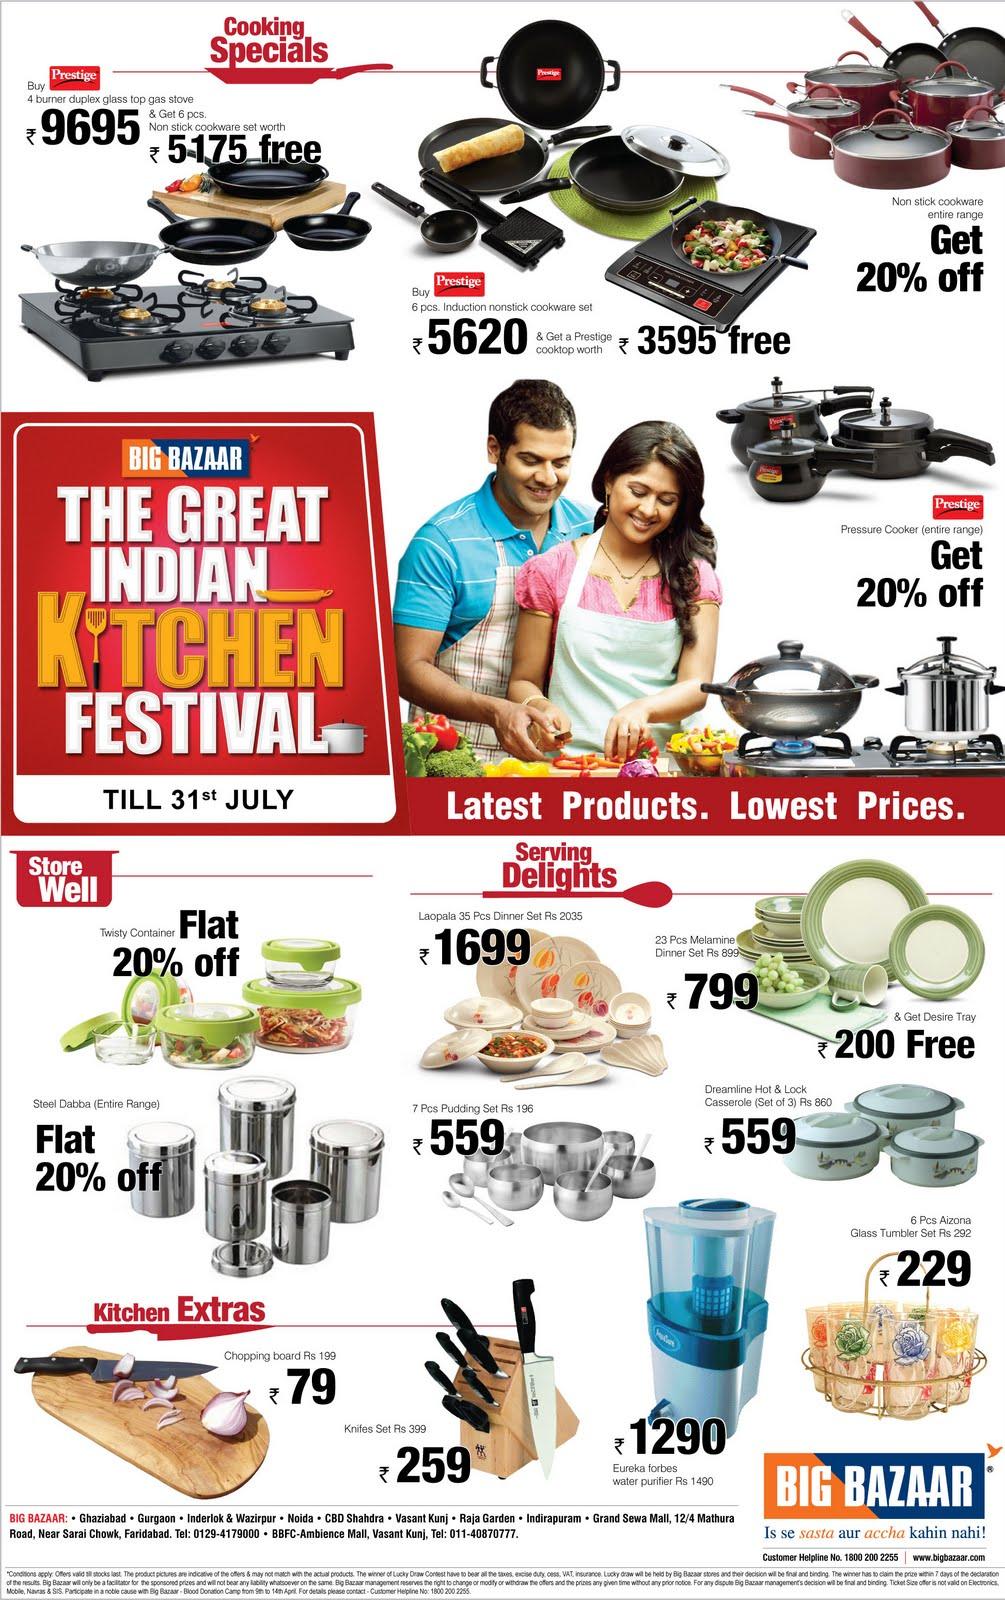 Print Ad For Bigbazaar Kitchen Festival Creative To Creation